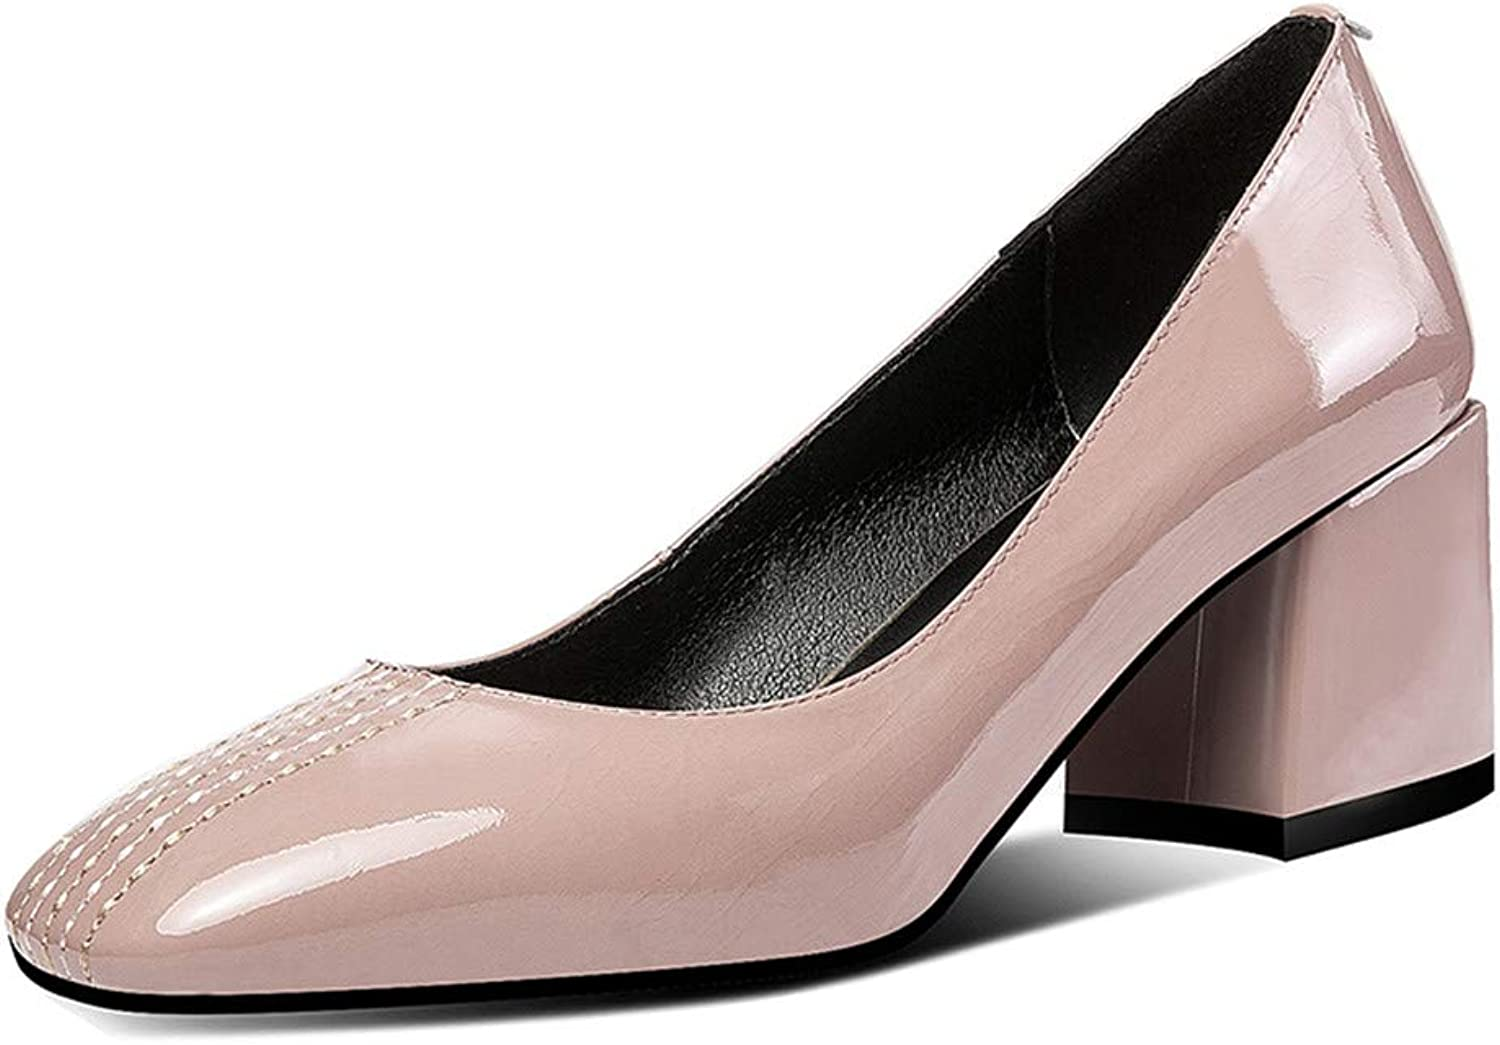 Nine Seven Patent Leather Women's Square Toe Concise Mid Chunky Heel Glossy Handmade Concise Thread Slip On Pumps